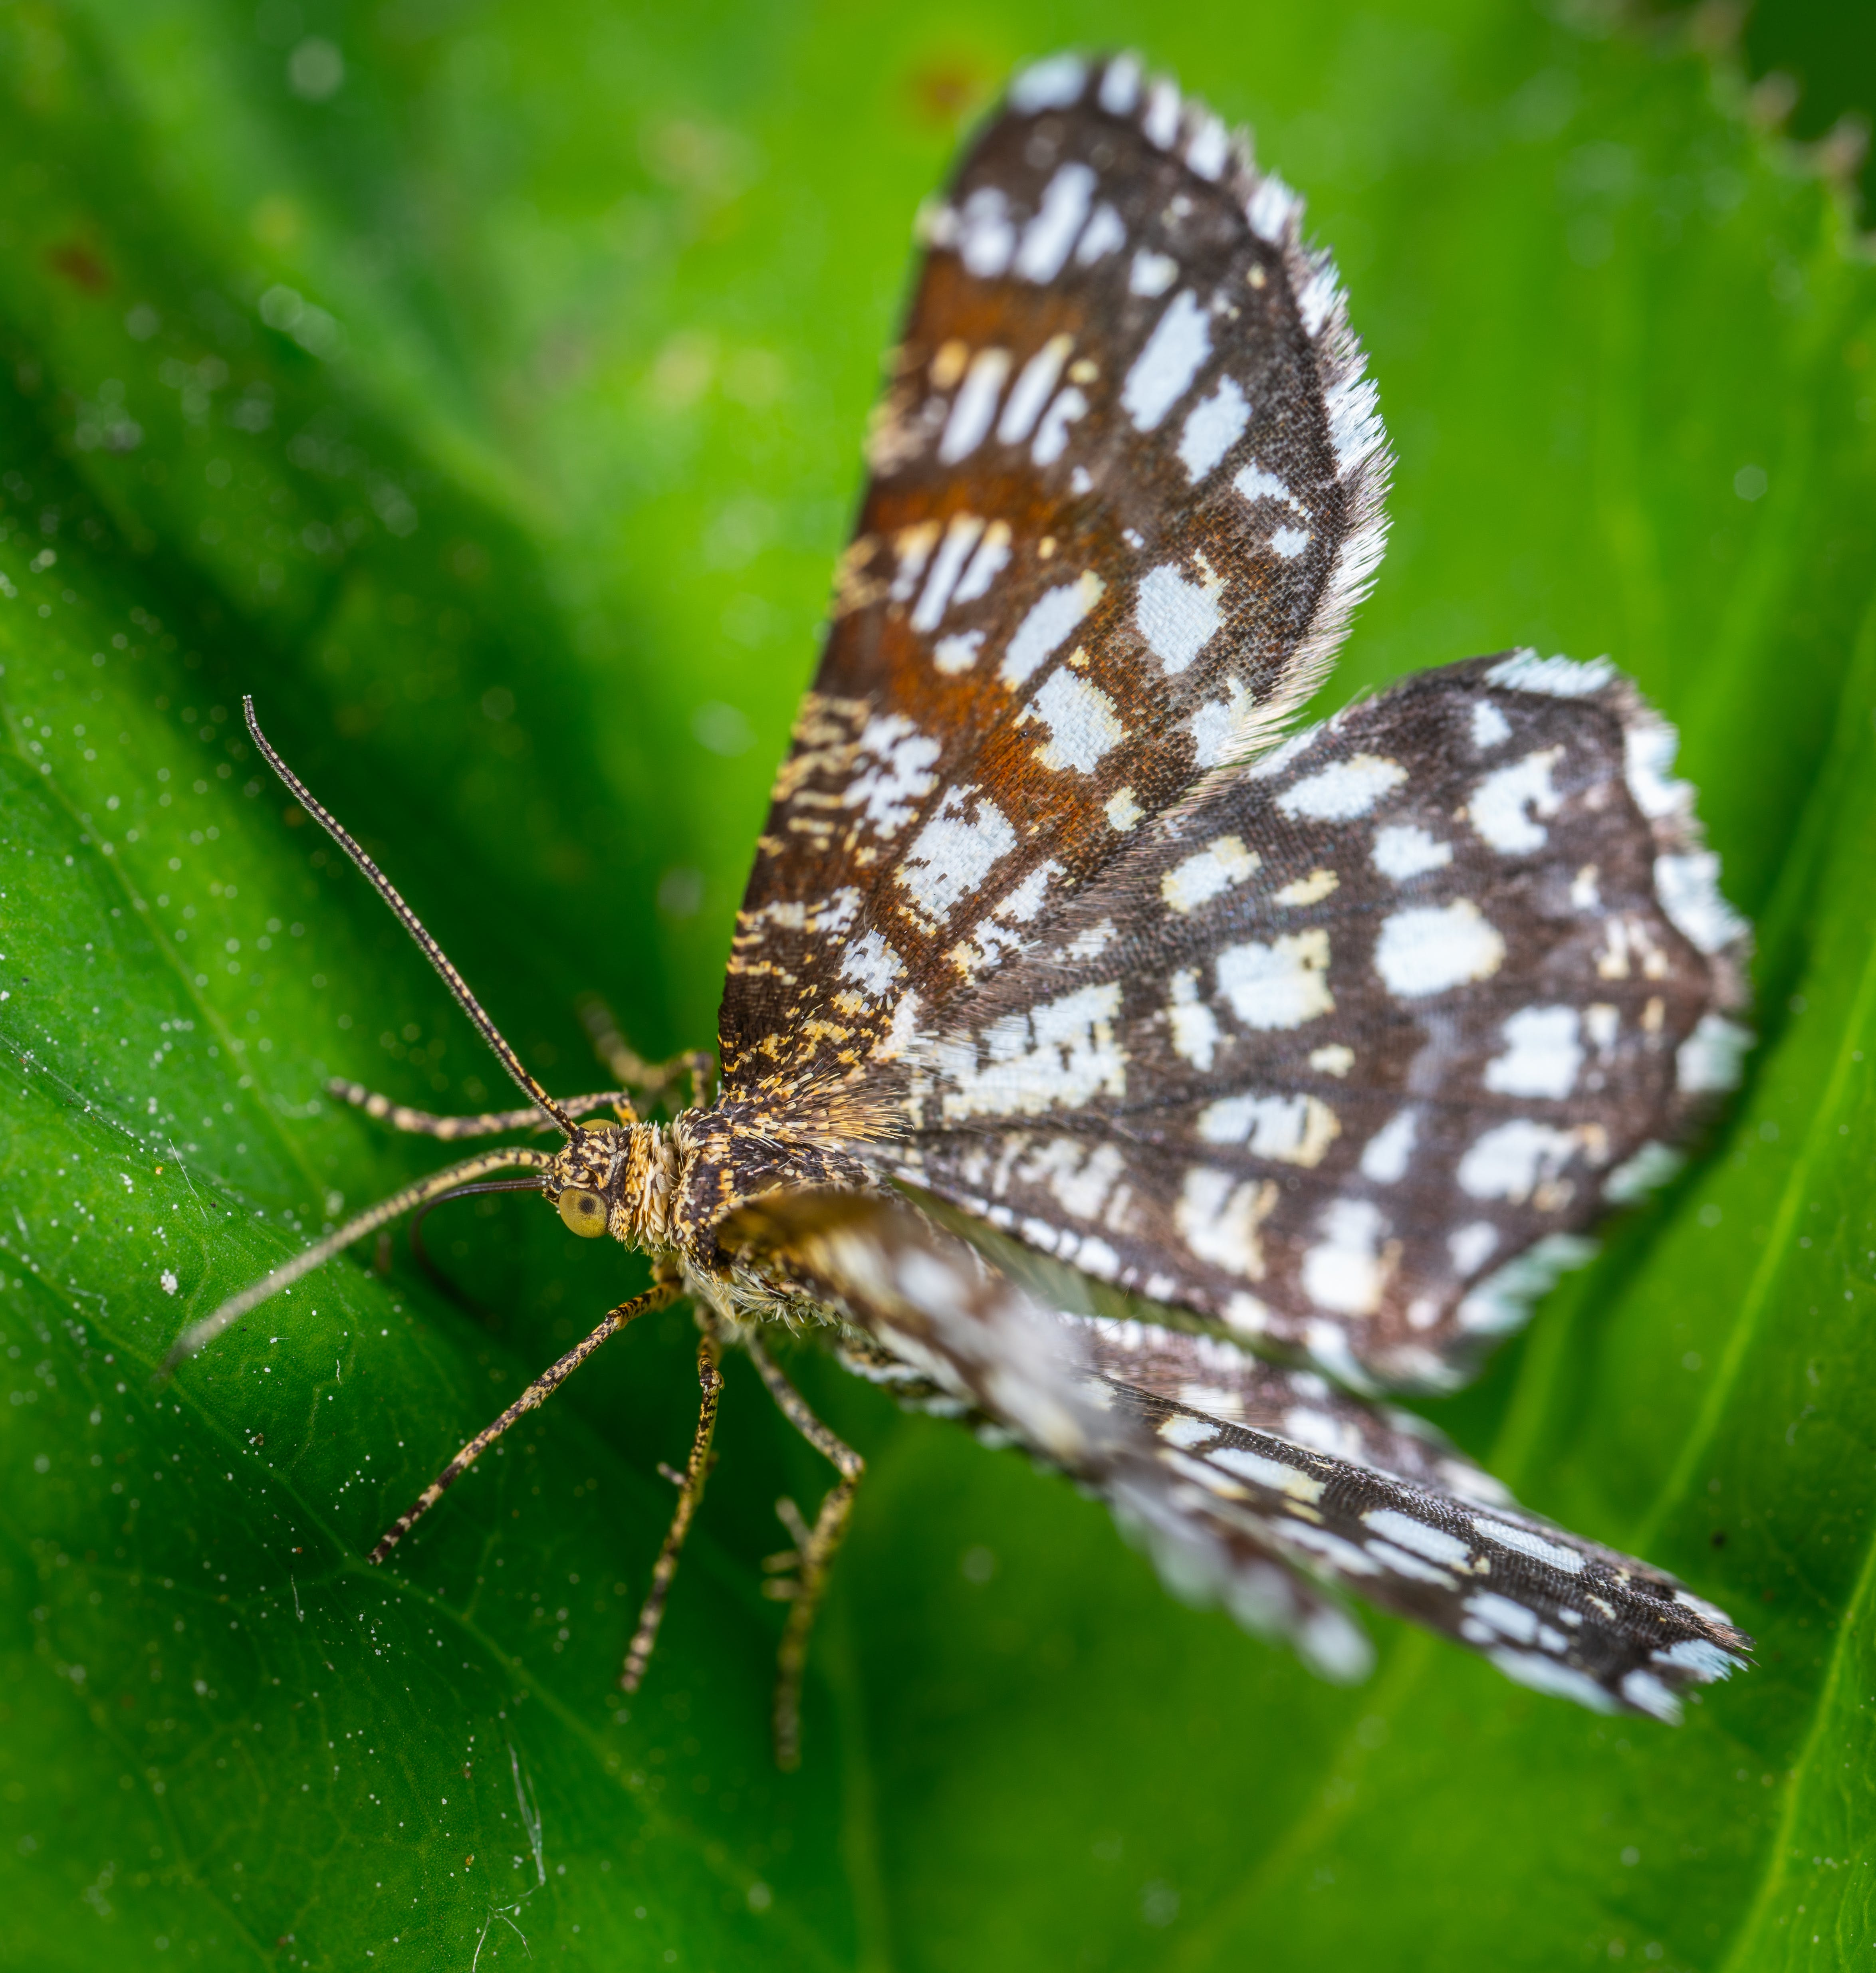 White And Brown Butterfly On Green Leaf